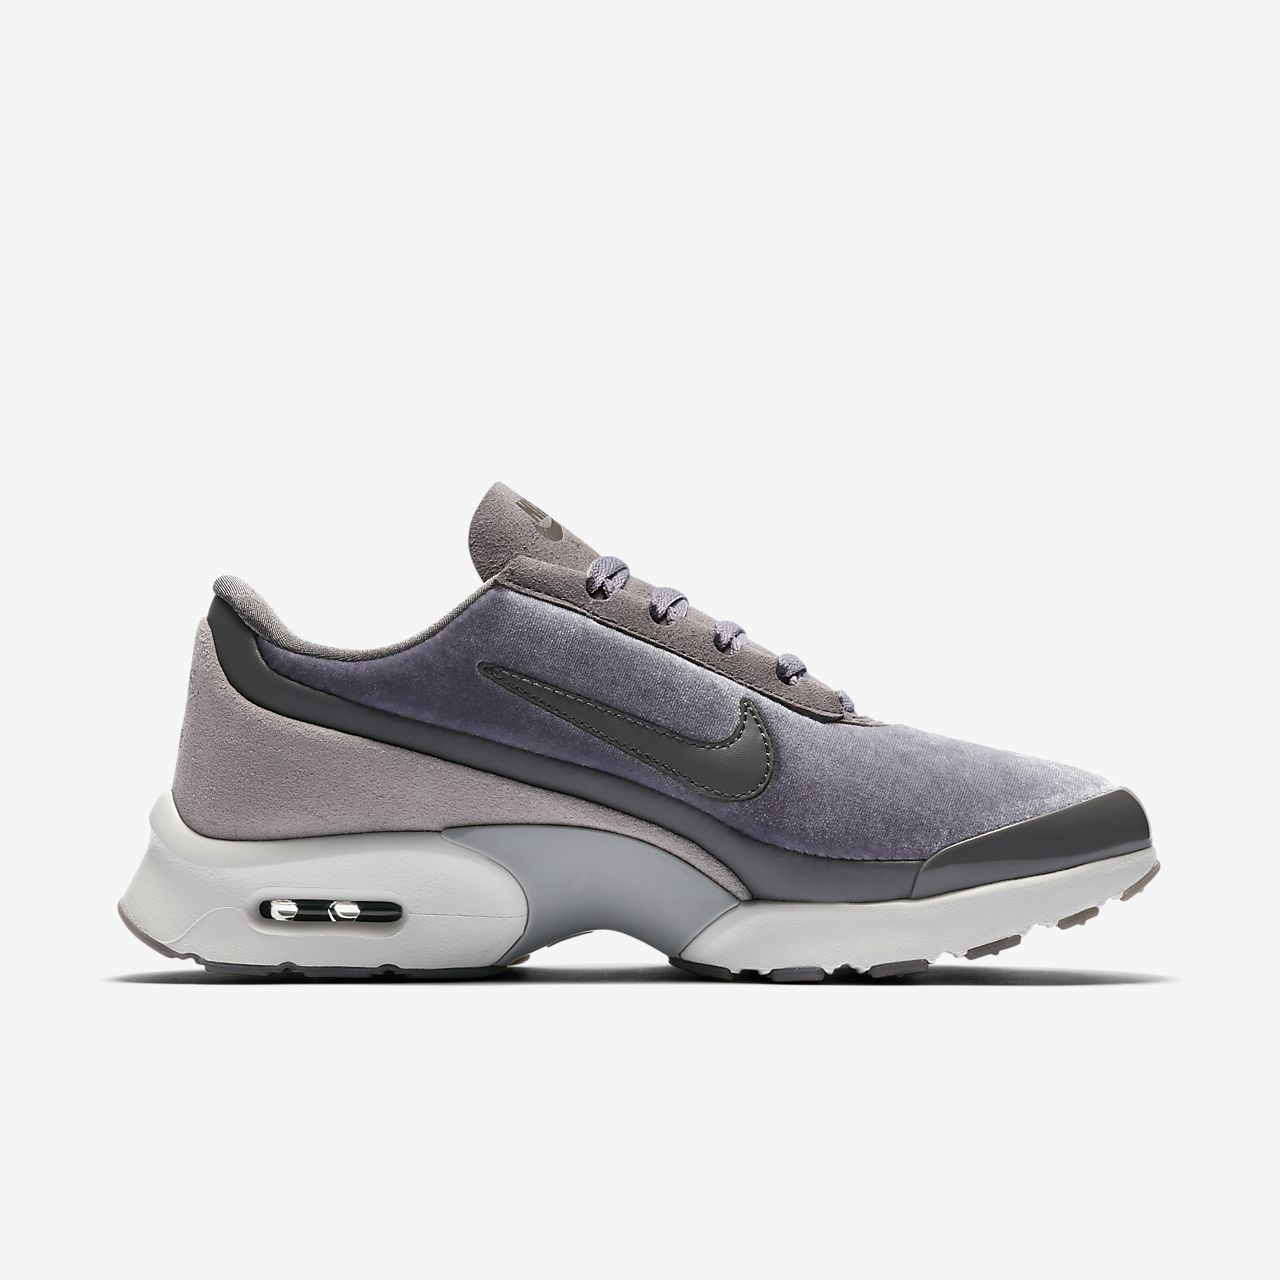 ... Chaussure Nike Air Max Jewell LX pour Femme